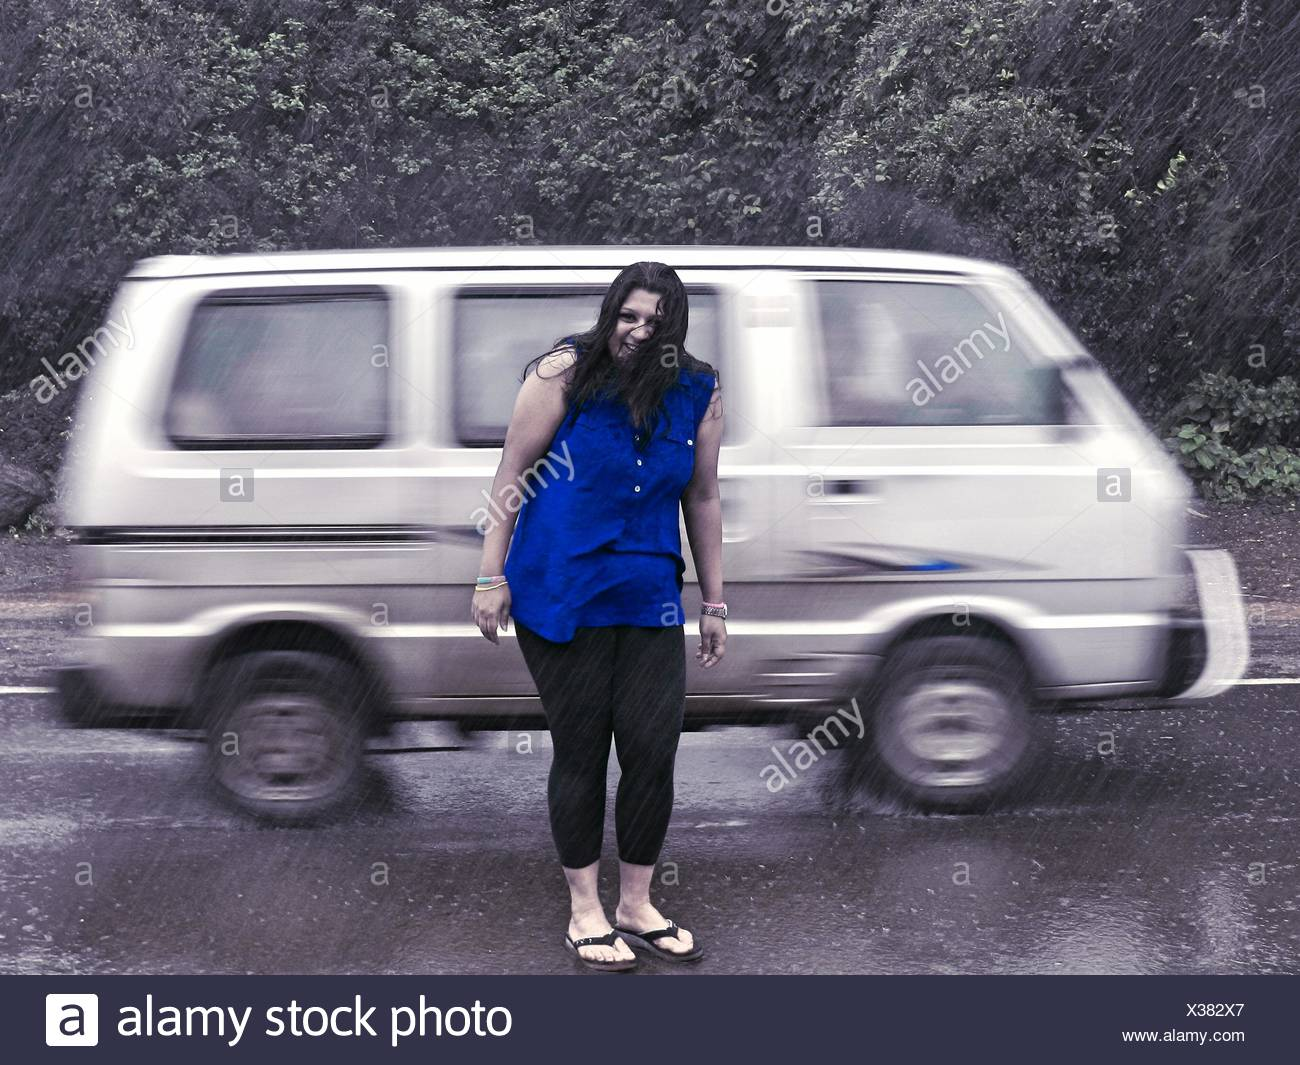 Full Length Portrait Of Woman Standing In Front Of Speeding Car On Rainy Day - Stock Image